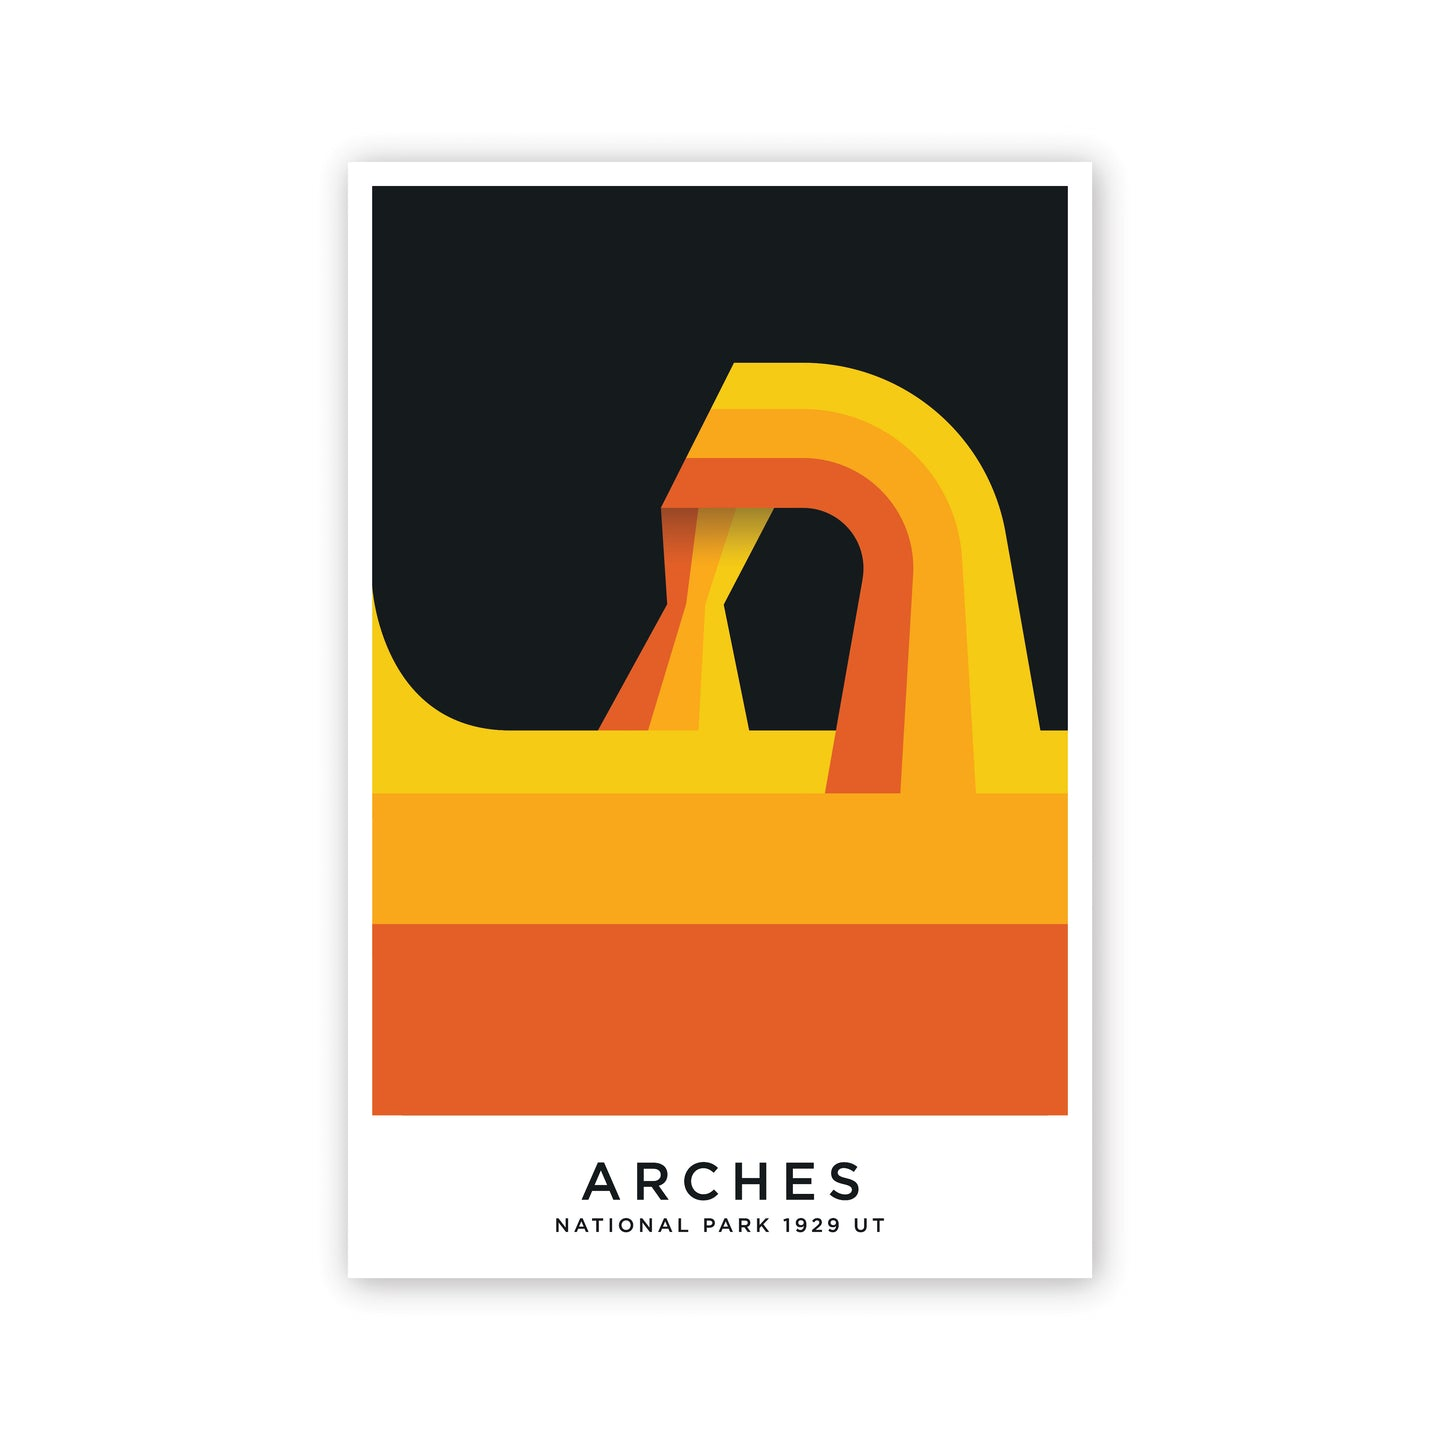 Arches 8 x 12 Poster